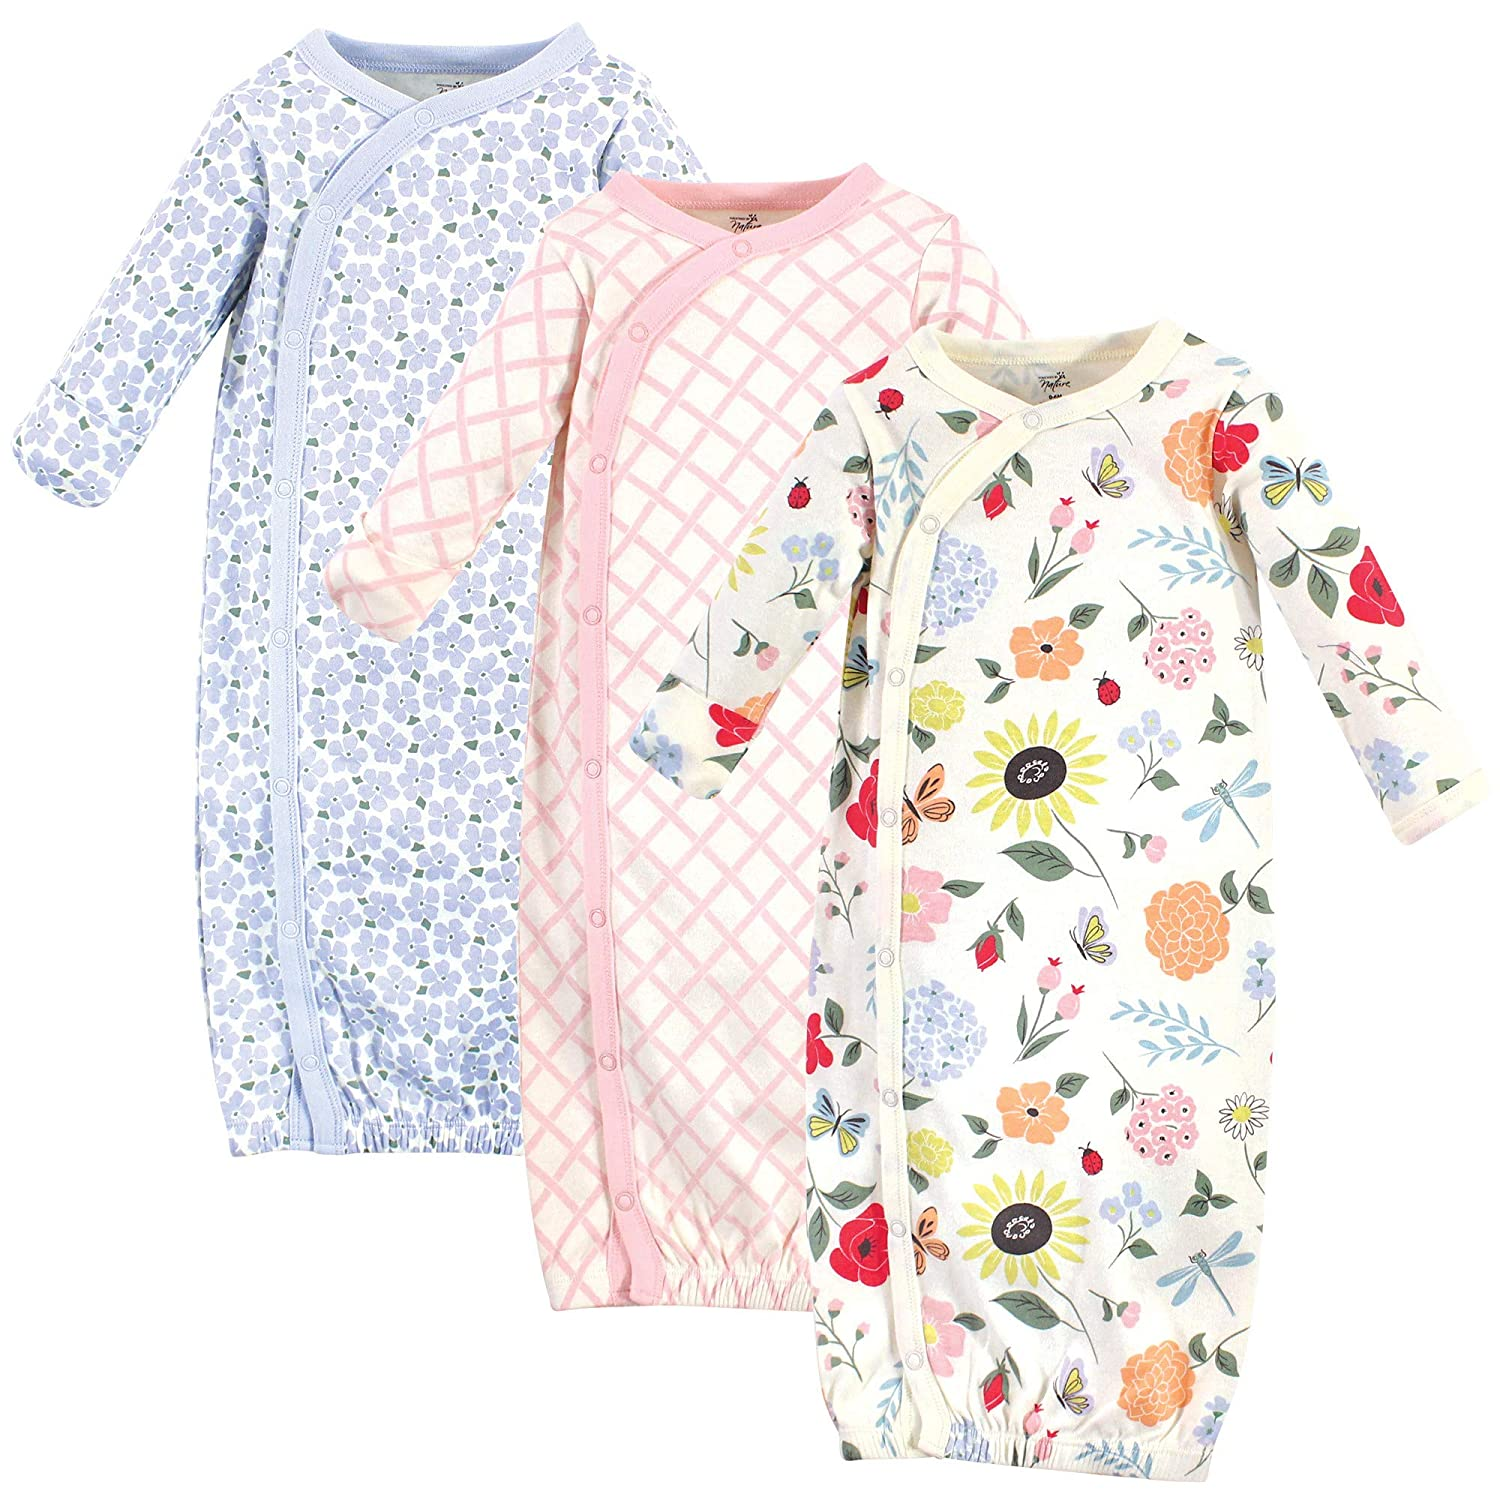 Flutter Garden Touched by Nature Baby Organic Cotton Kimono Gowns 3pk